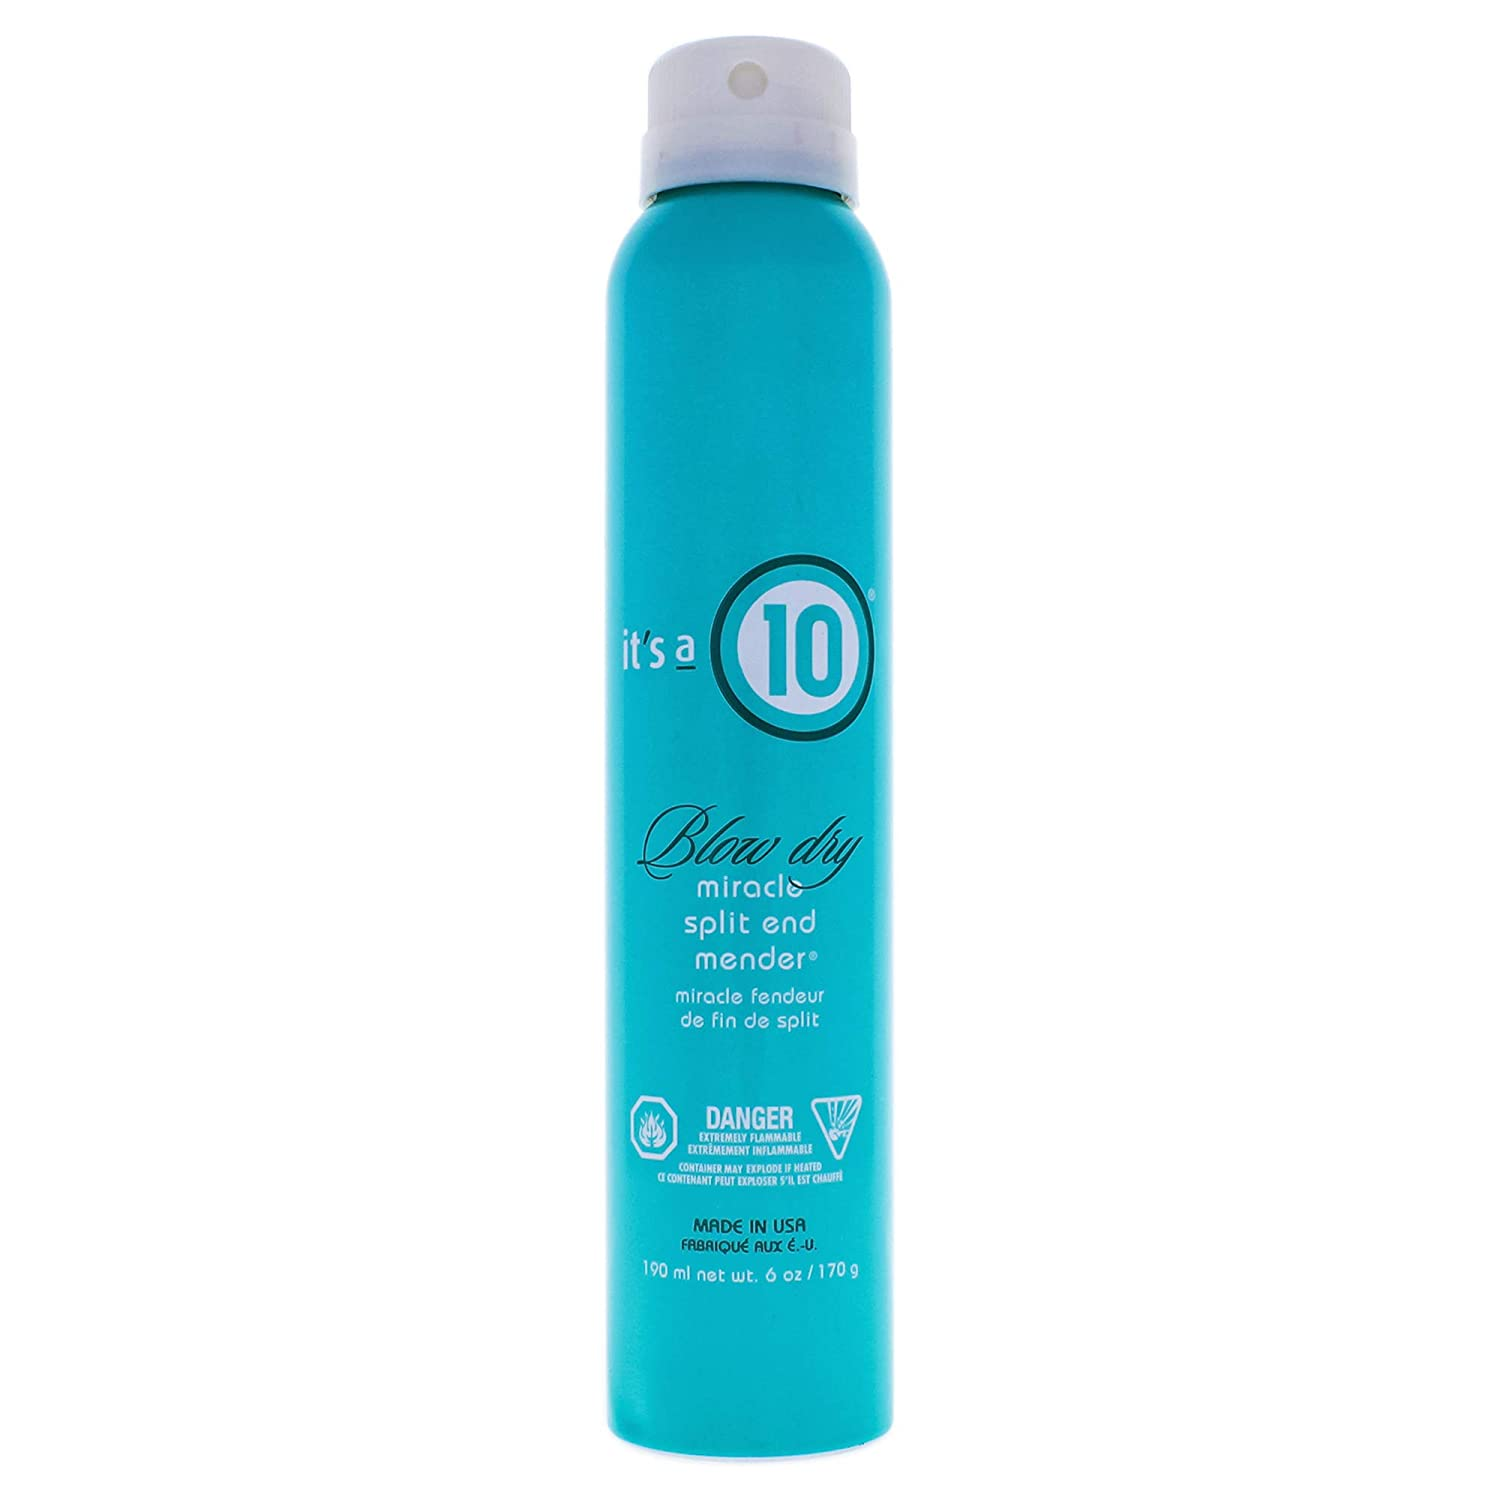 It's A 10 Blow Dry Miracle Split End Mender, 6.67 Ounce